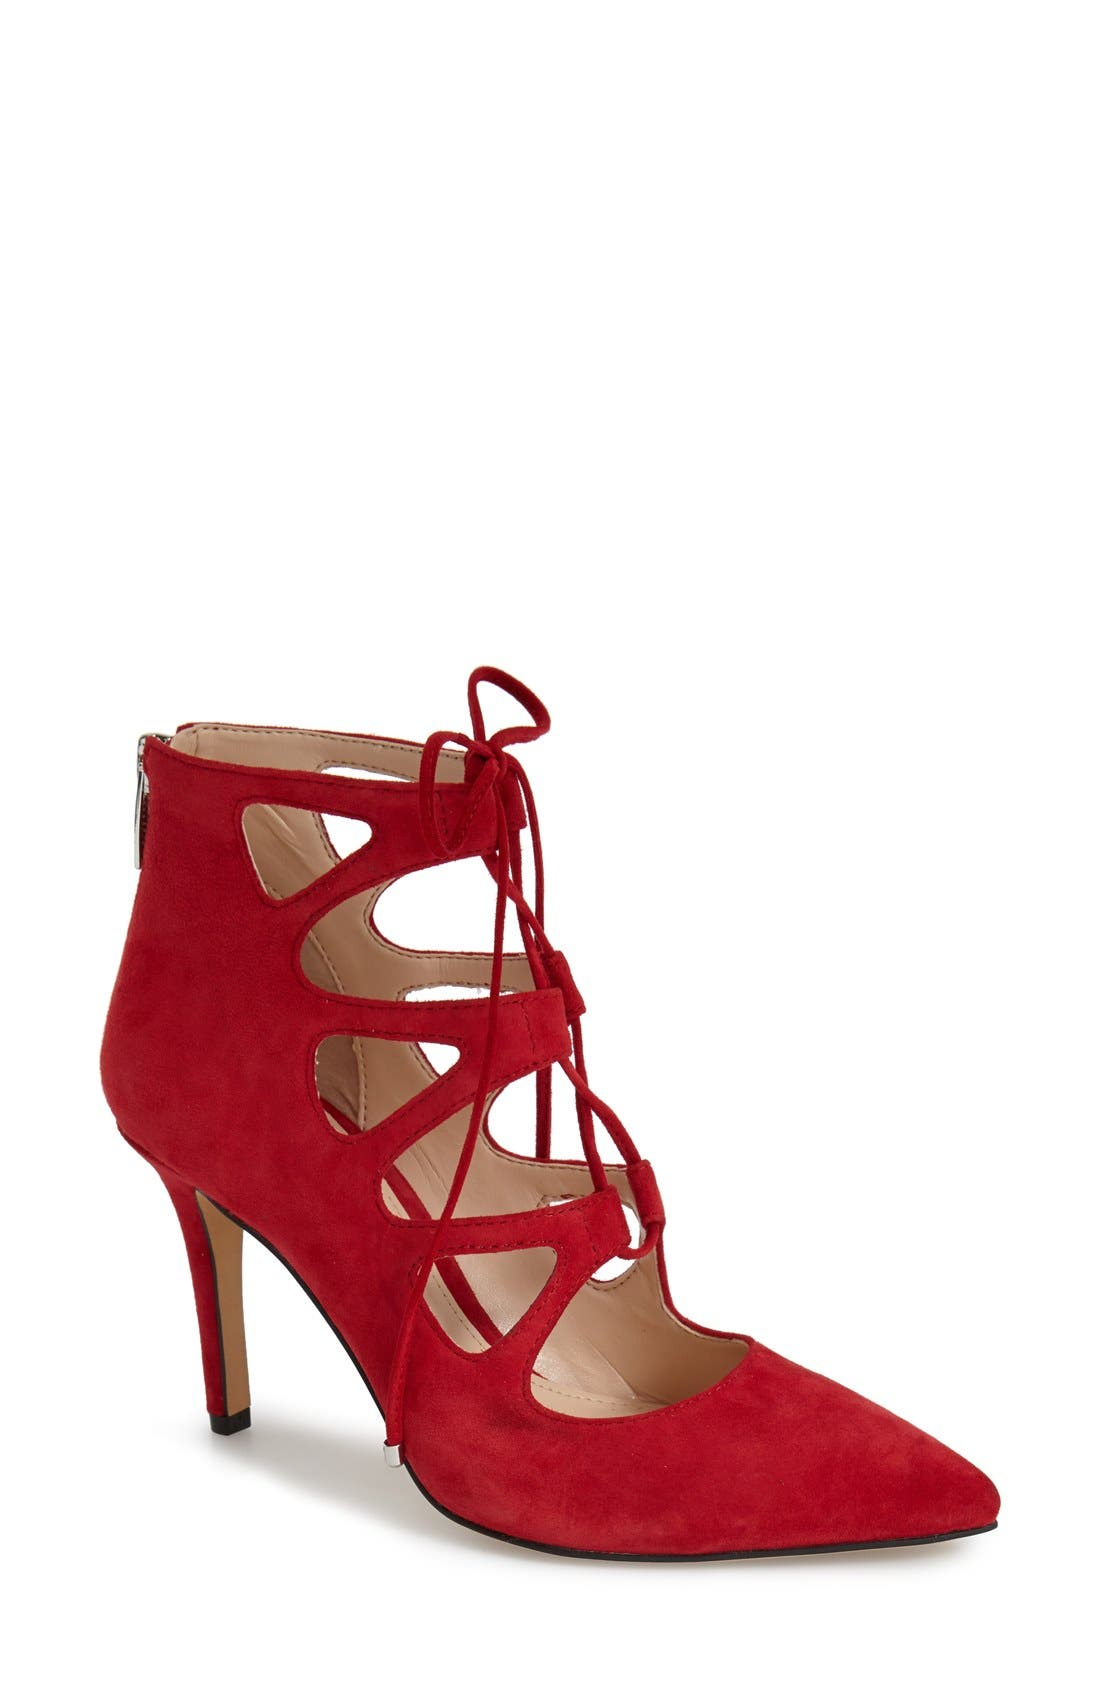 Alternate Image 1 Selected - Vince Camuto 'Bodell' Lace Up Pump (Women)